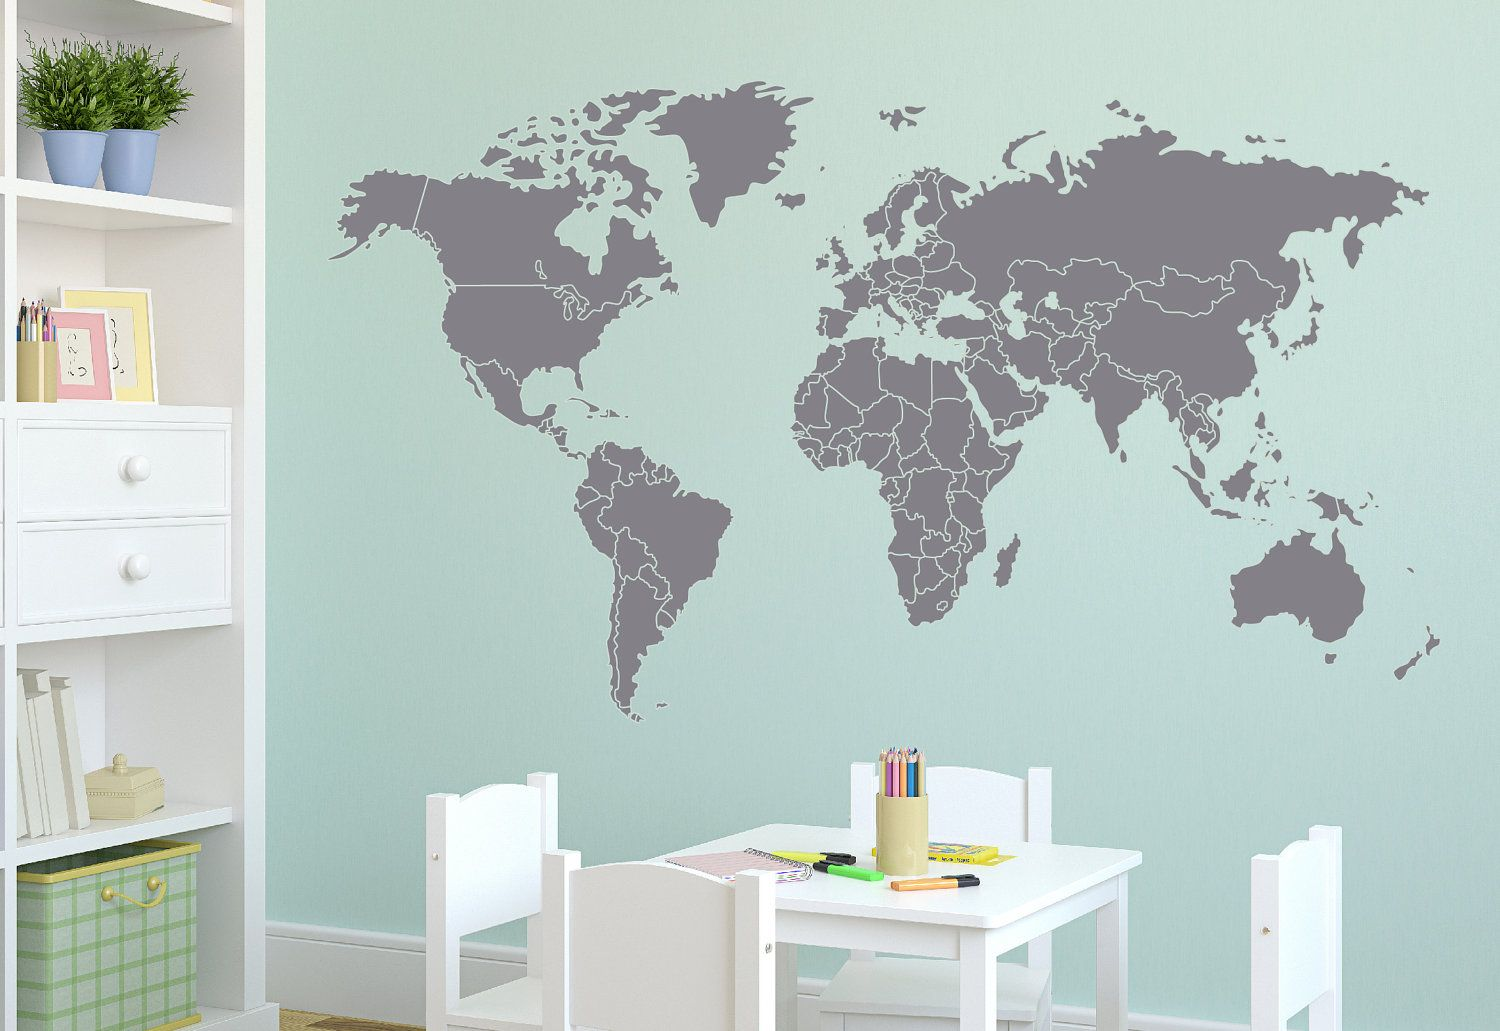 World map wall decal with countries borders wall vinyl wall wall decal world map with countries borders wall vinyl decal sticker gumiabroncs Choice Image